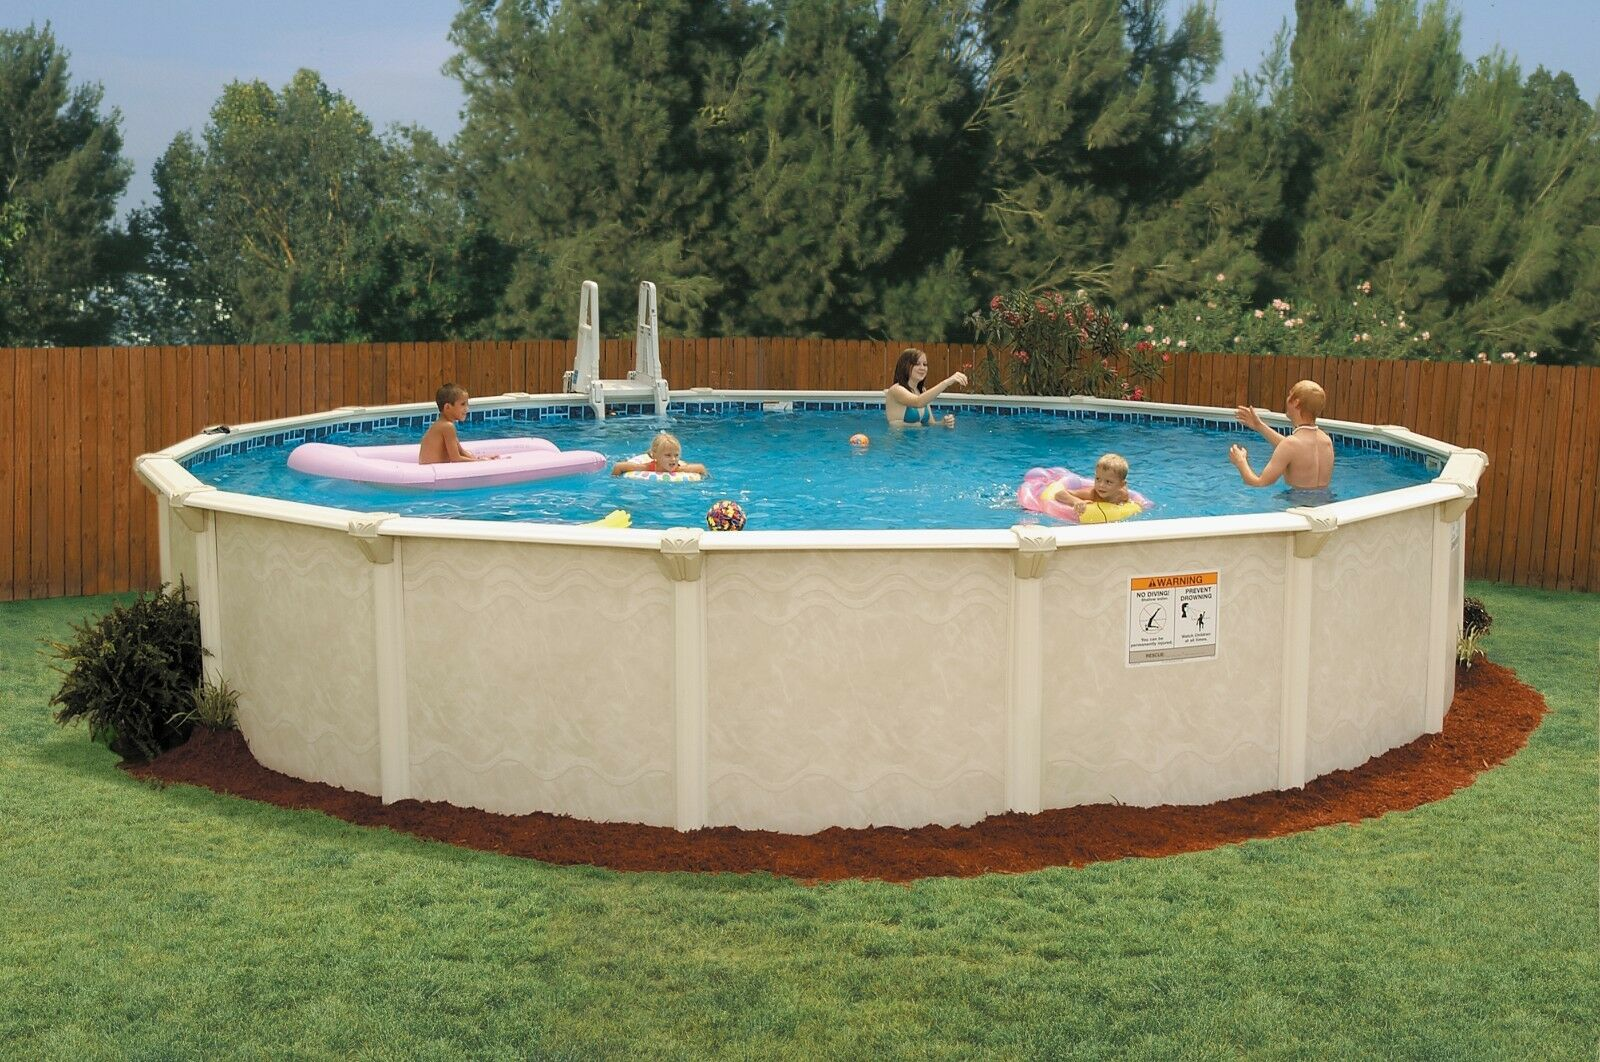 Details about DOUGHBOY PREMIER 18ft round SWIMMING POOL KIT